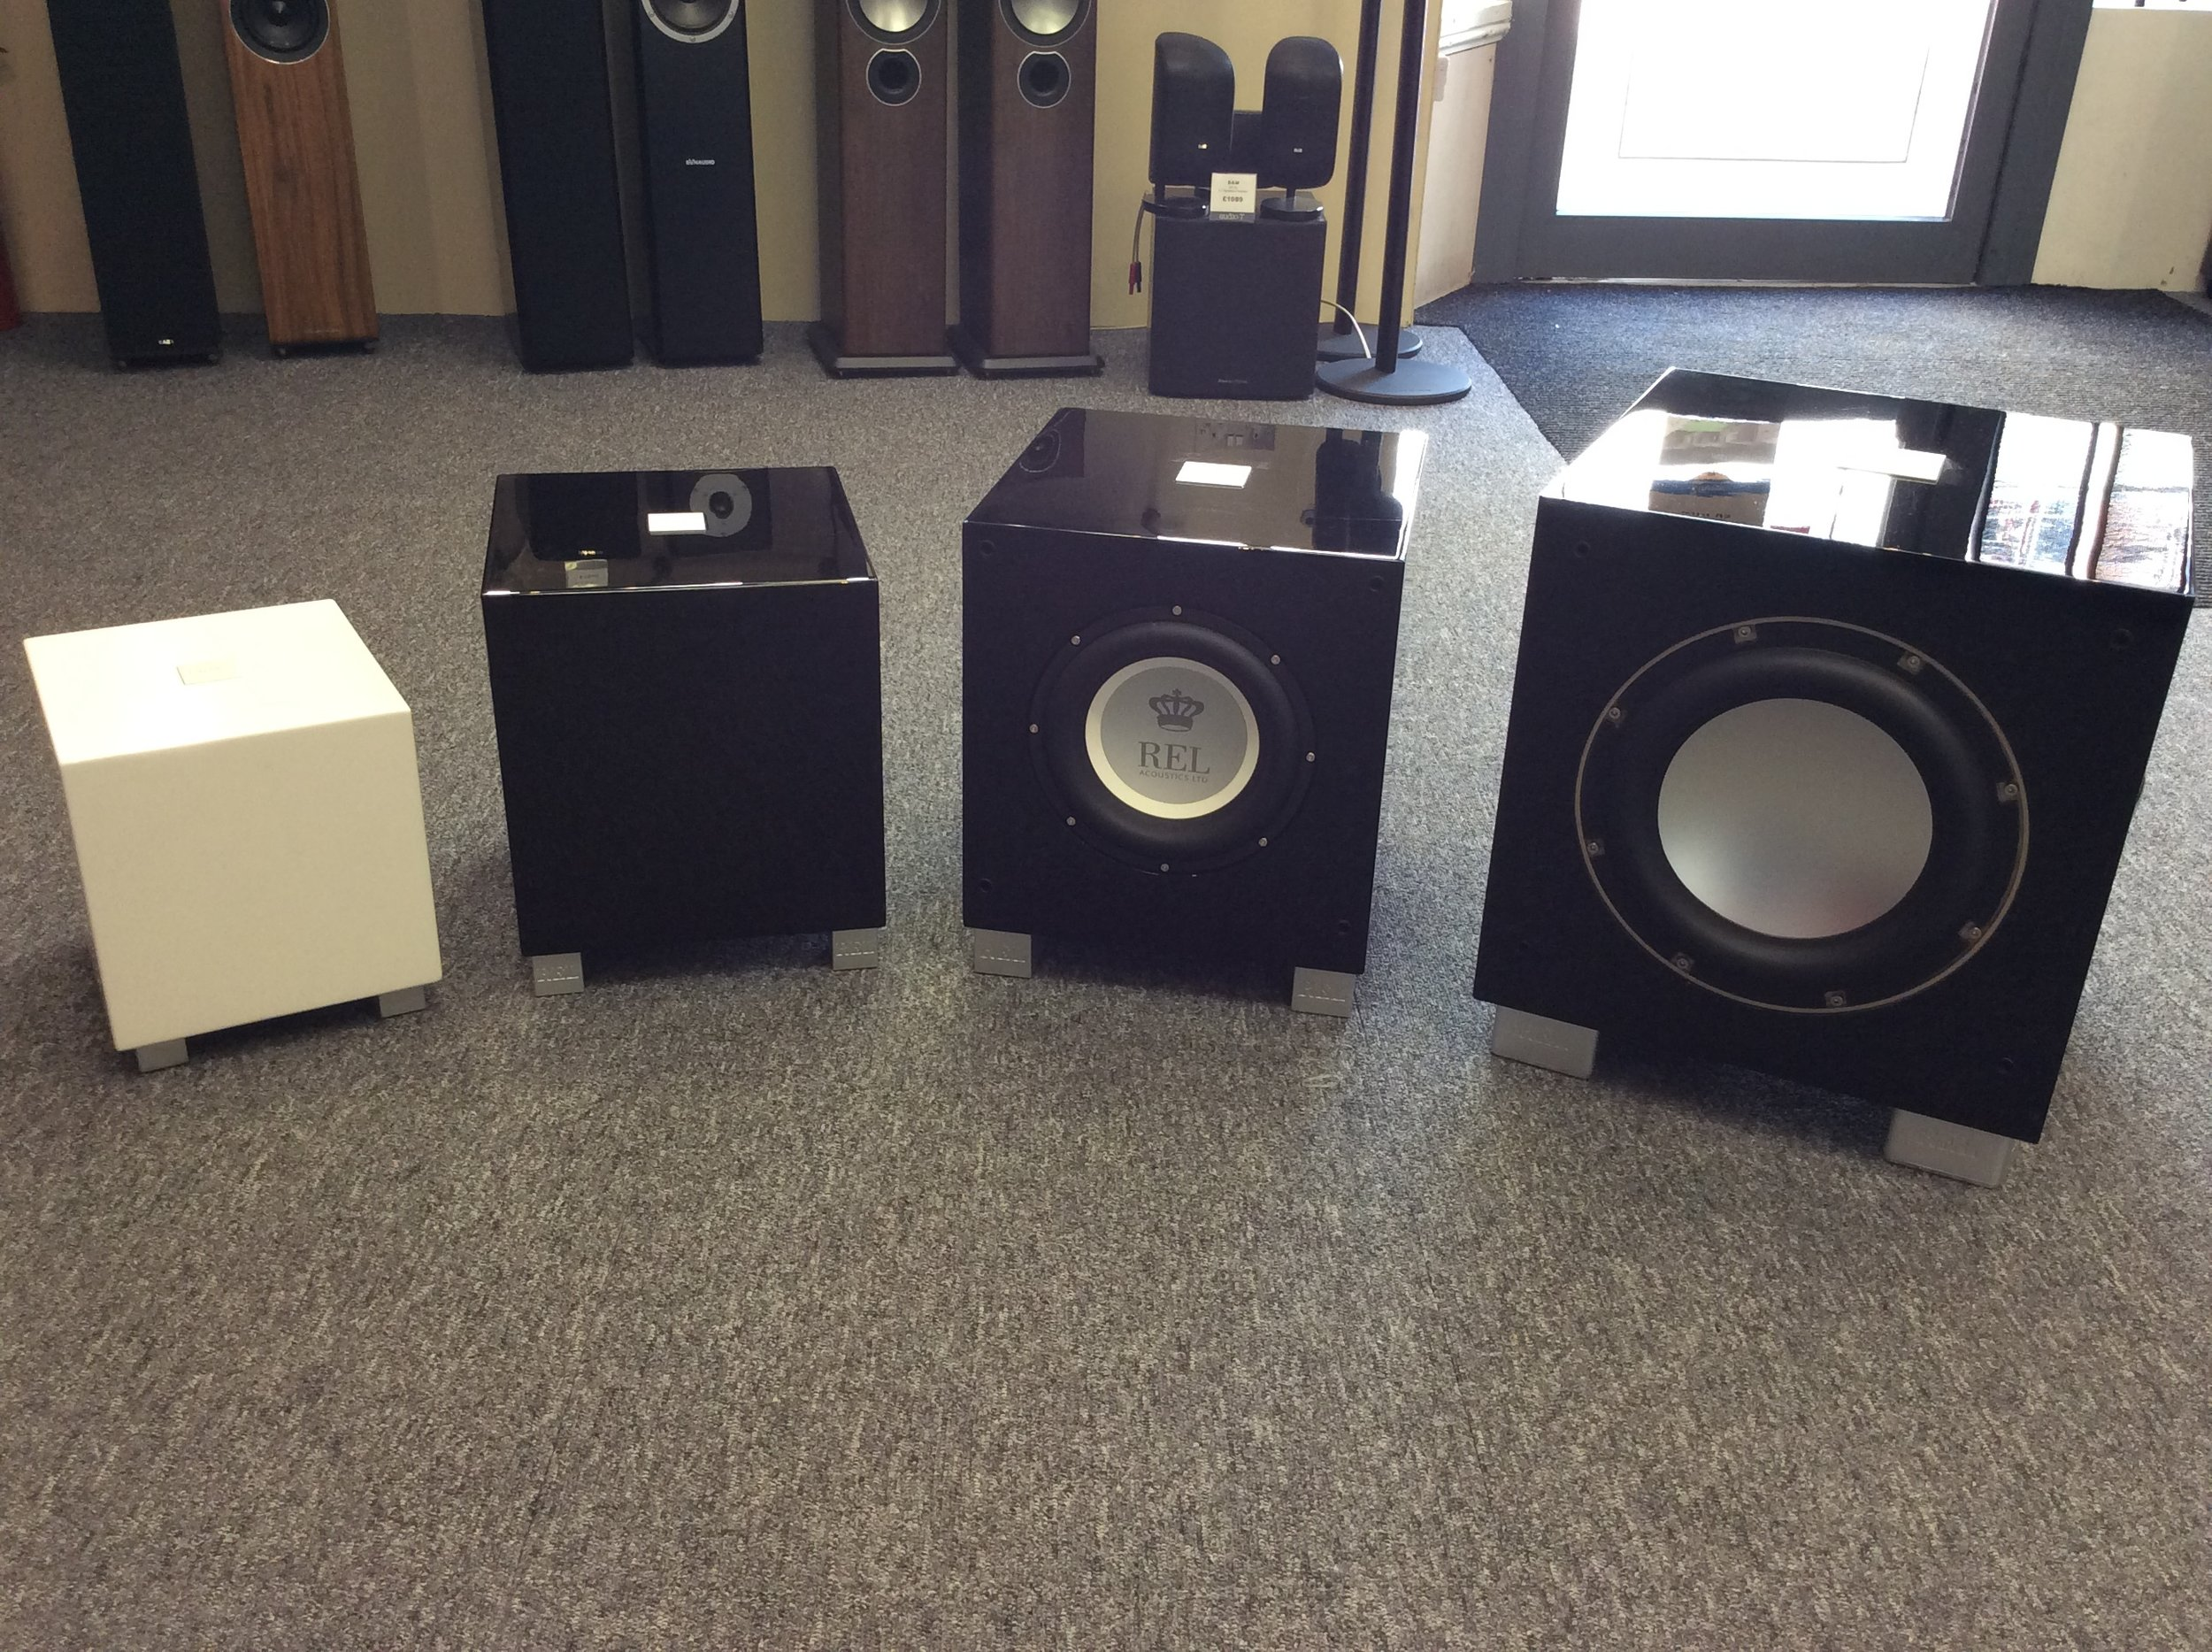 REL subwoofers come in different sizes and most are available in a piano white or piano black.